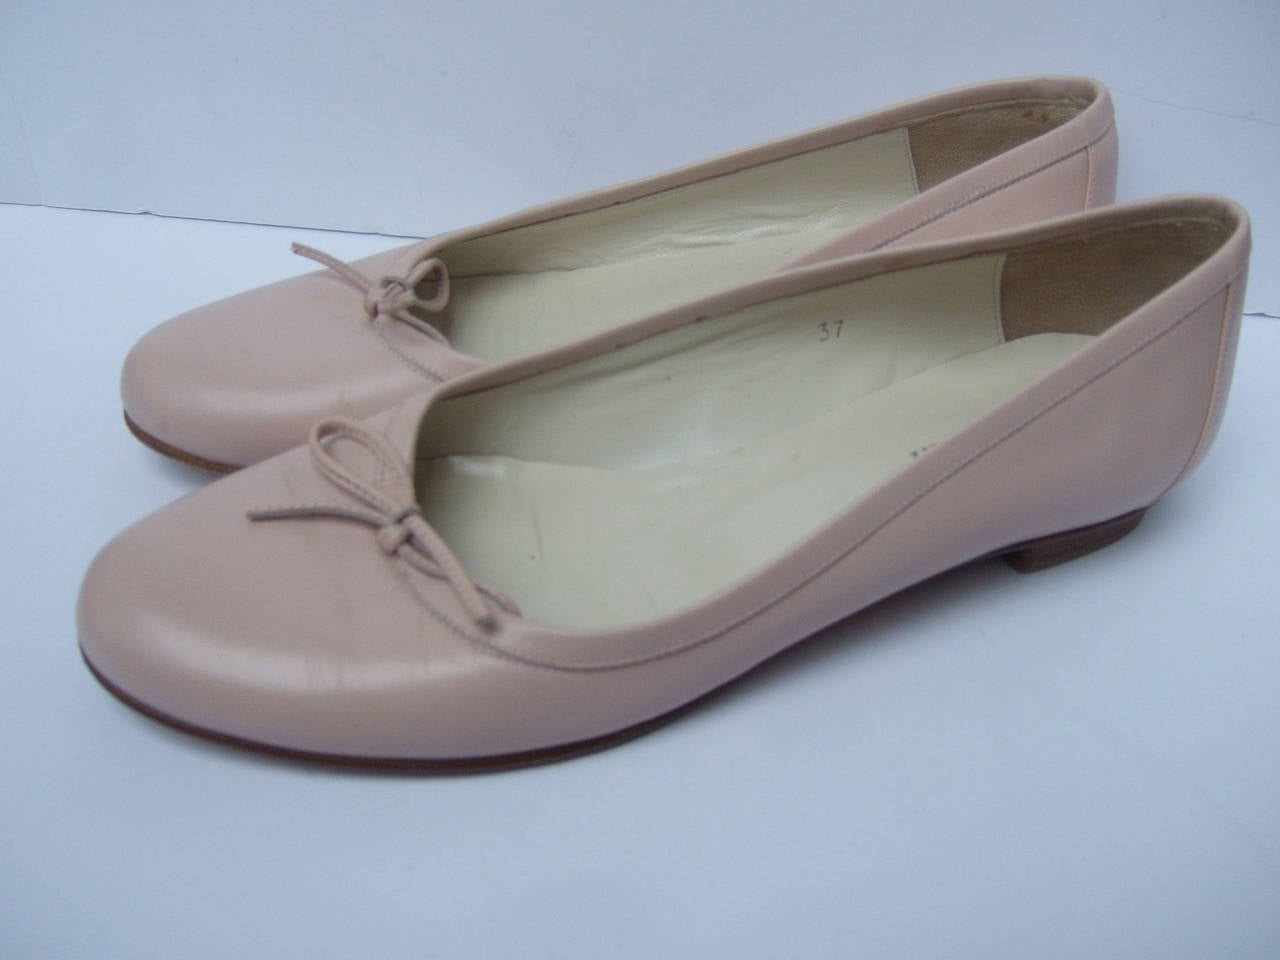 Burberry Blush Pink Leather Ballet Style Flats Size 37 In Excellent Condition For Sale In Santa Barbara, CA